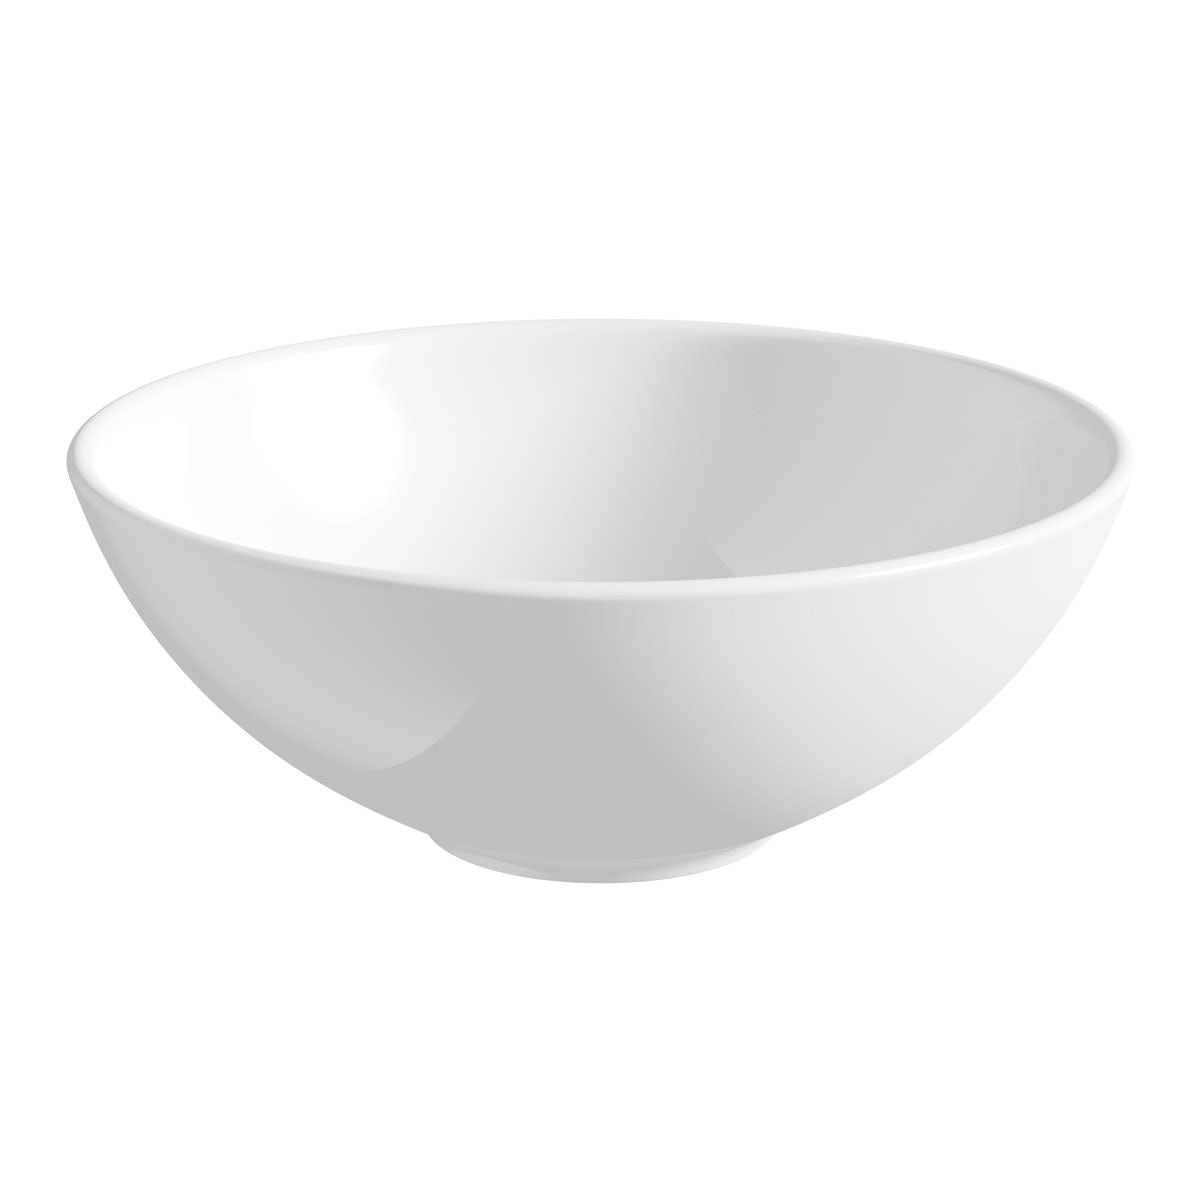 Orchard Derwent round countertop basin 405mm with waste